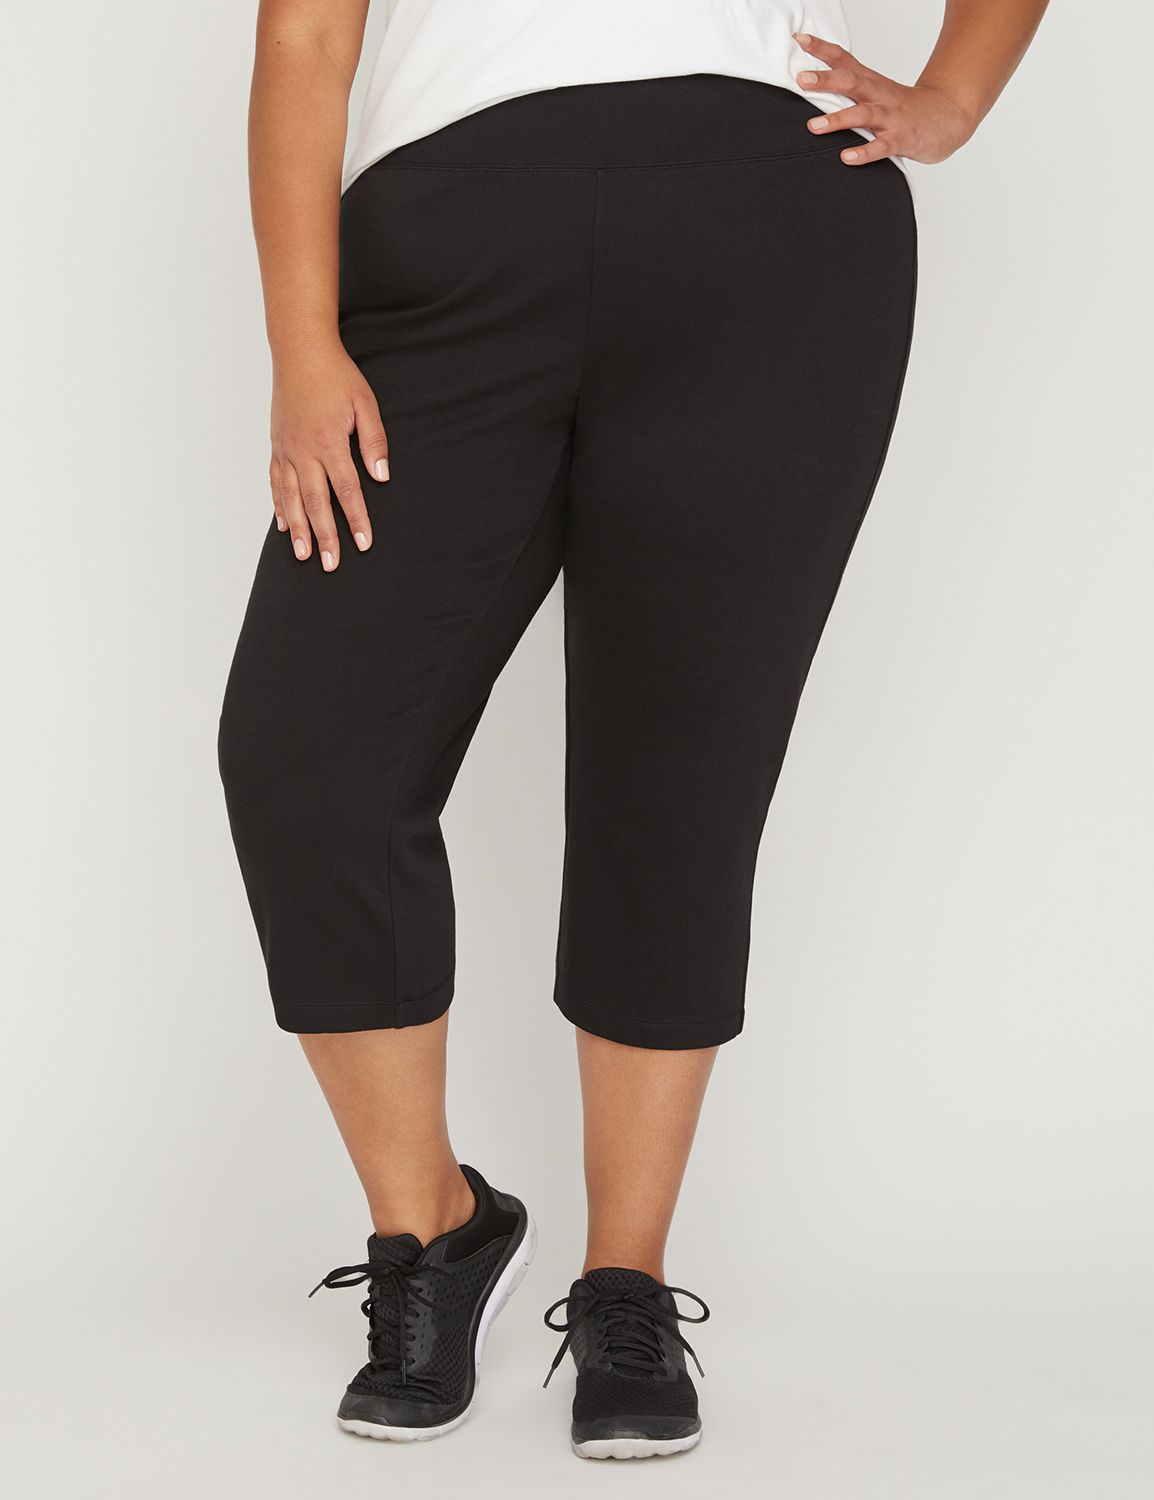 Yoga Capri Yoga Capri MP-300005172